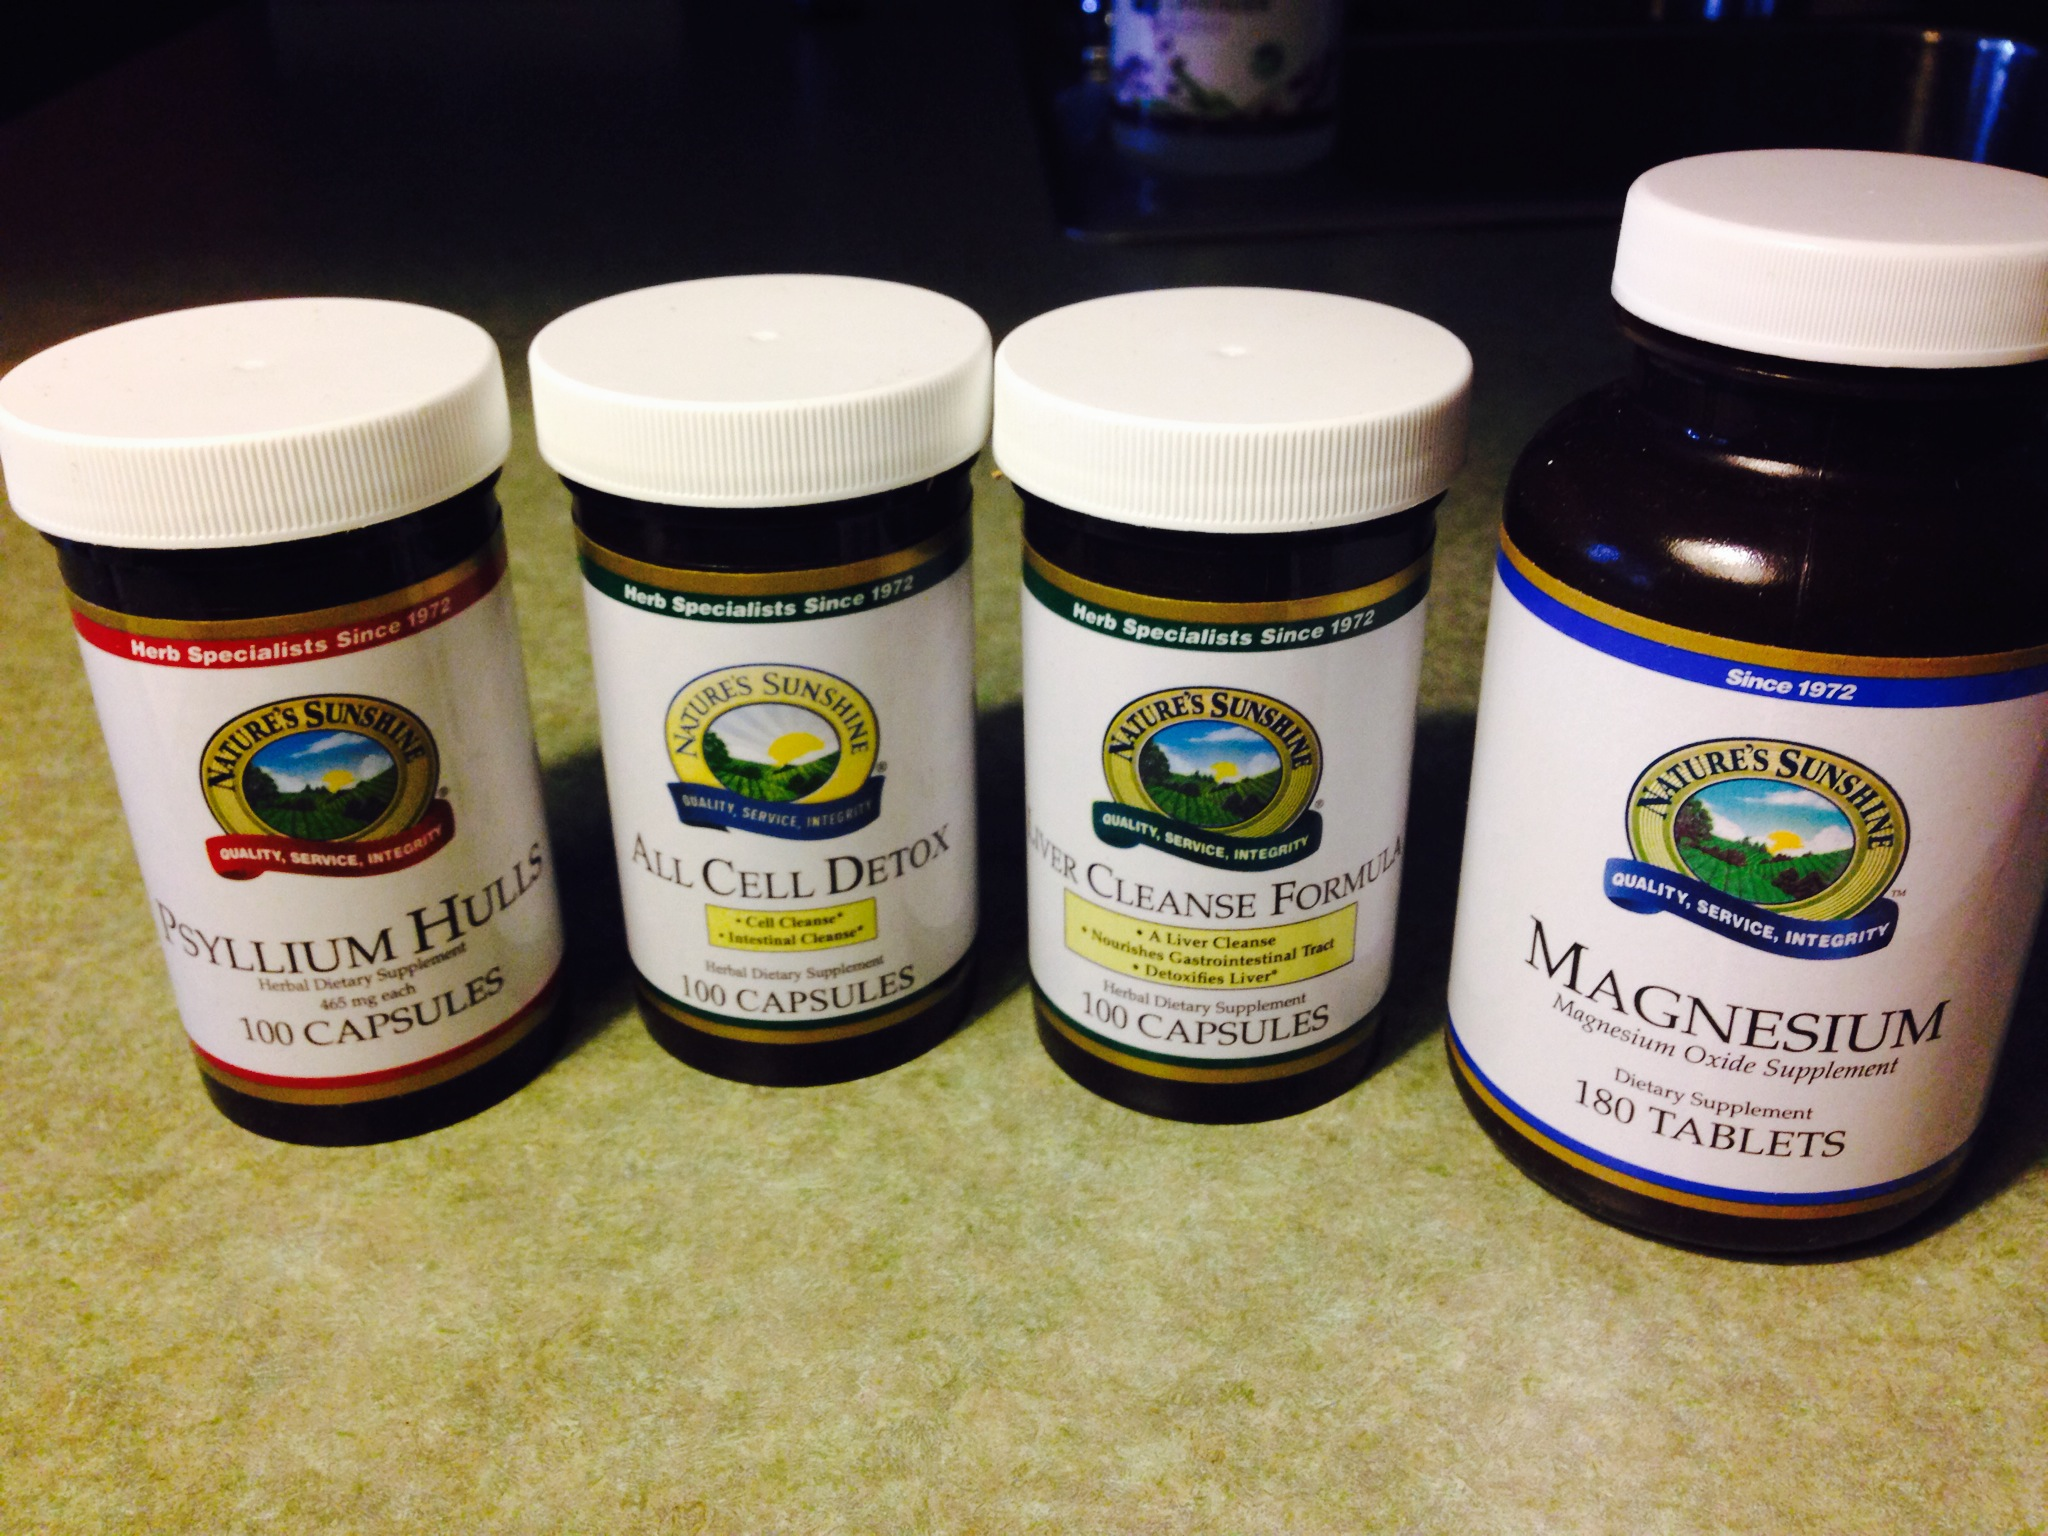 Natures Sunshine Brand is a wonderful brand of inexpensive supplements. I've had positive results with their products. Email me at desiree@modernhippie.org for ordering info:)